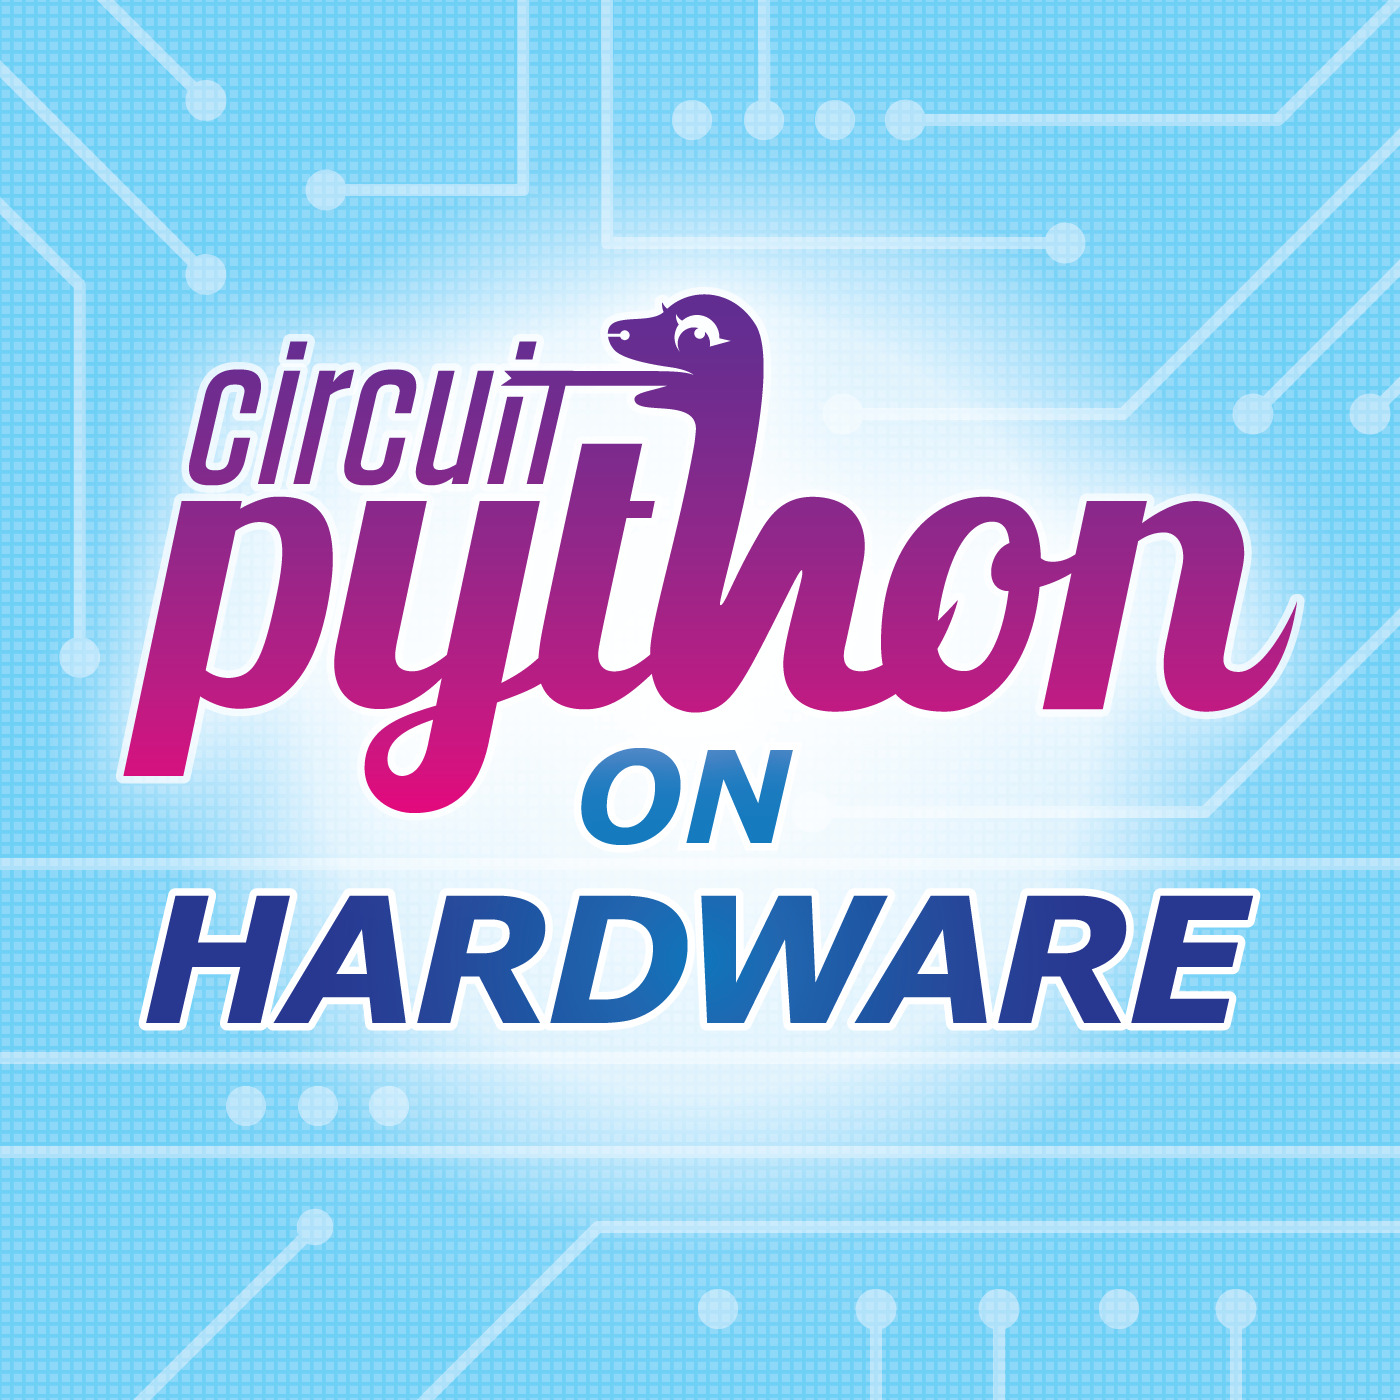 The Python on Hardware weekly video 107